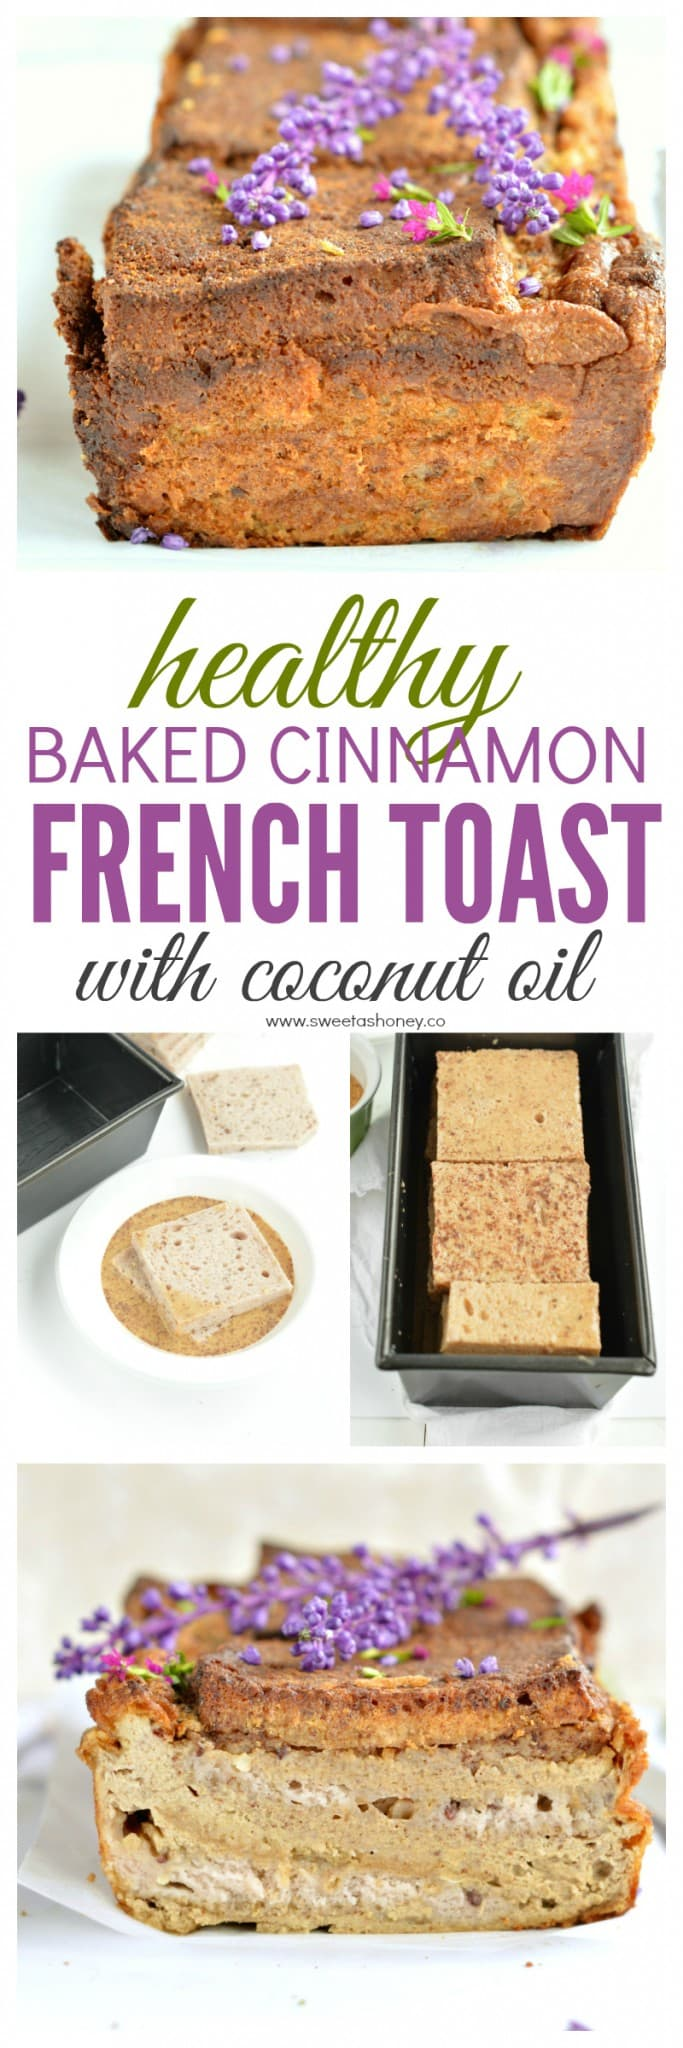 Baked cinnamon french toast loaf